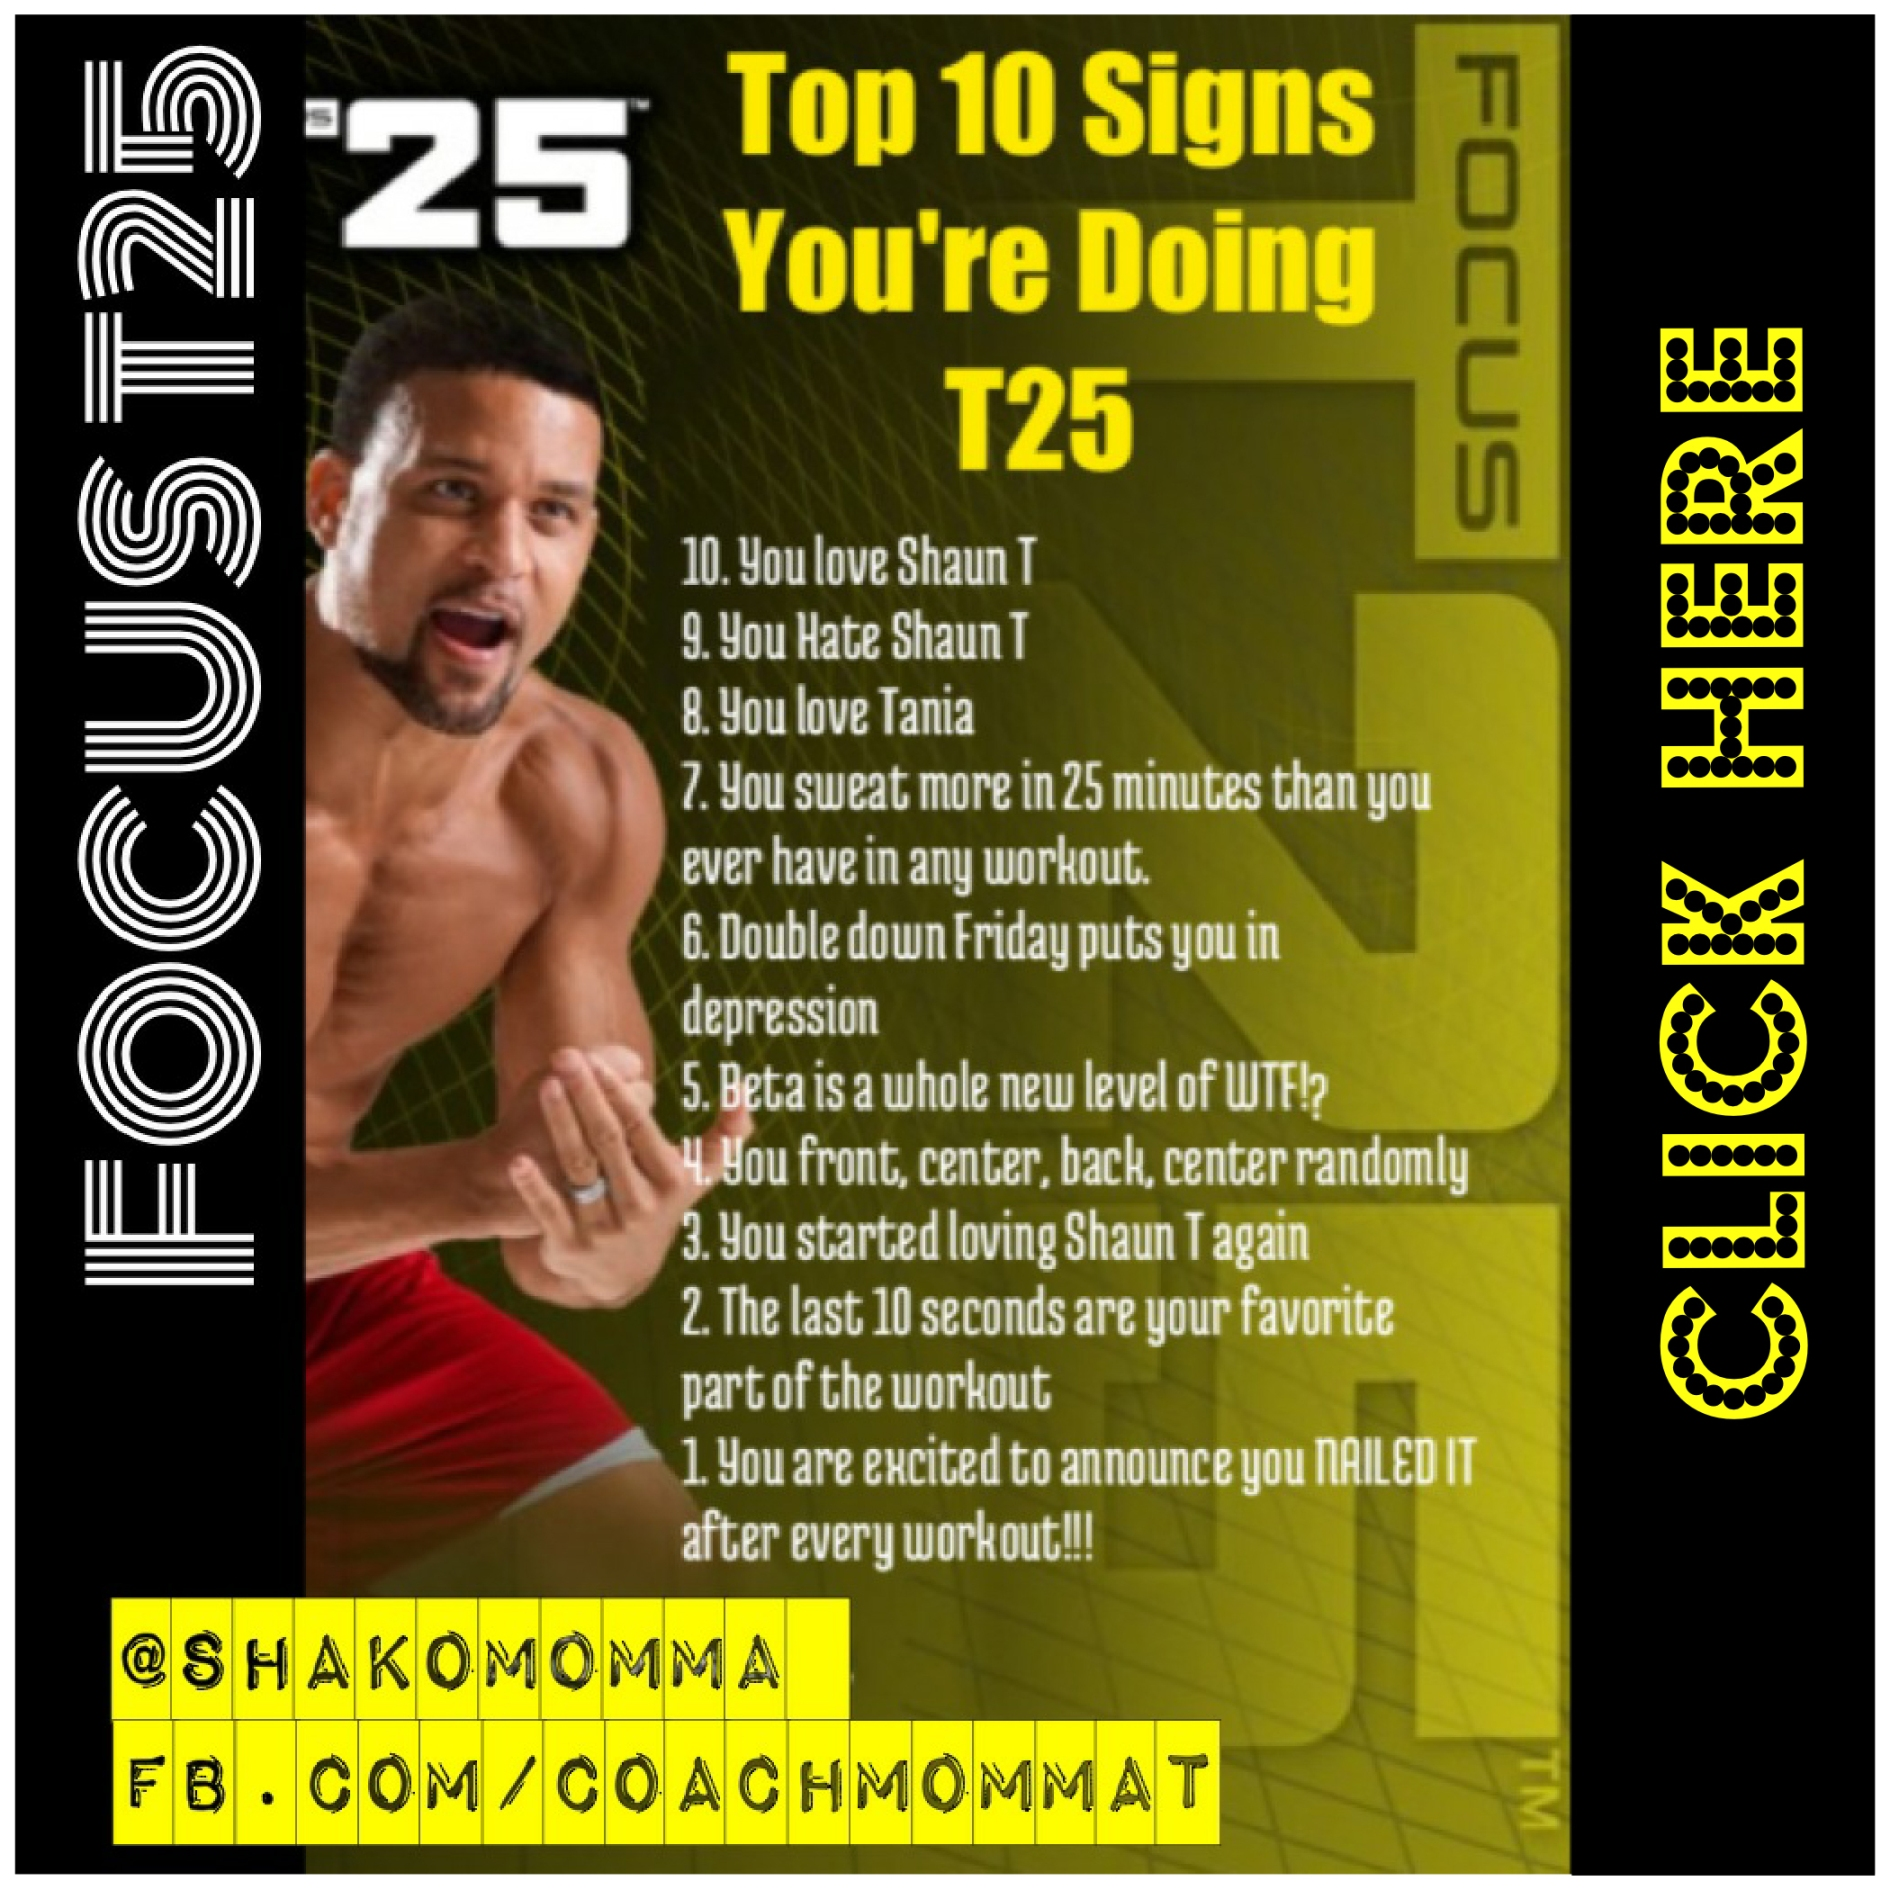 Top 10 Signs You're Doing T25